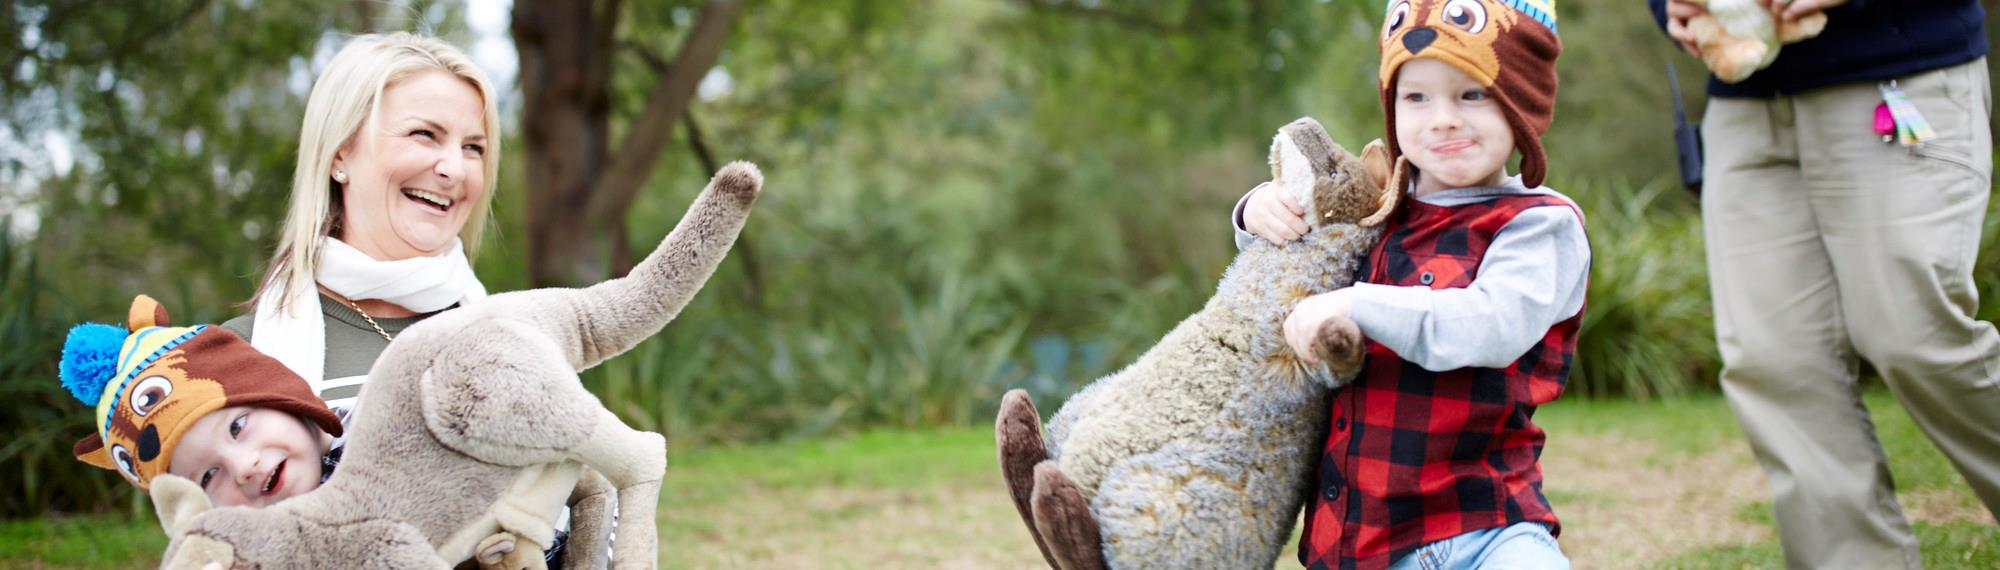 Mother laughing with her two kids who are playing with plush toy wallabies on Wallaby Wednesday at Healesville Sanctuary.